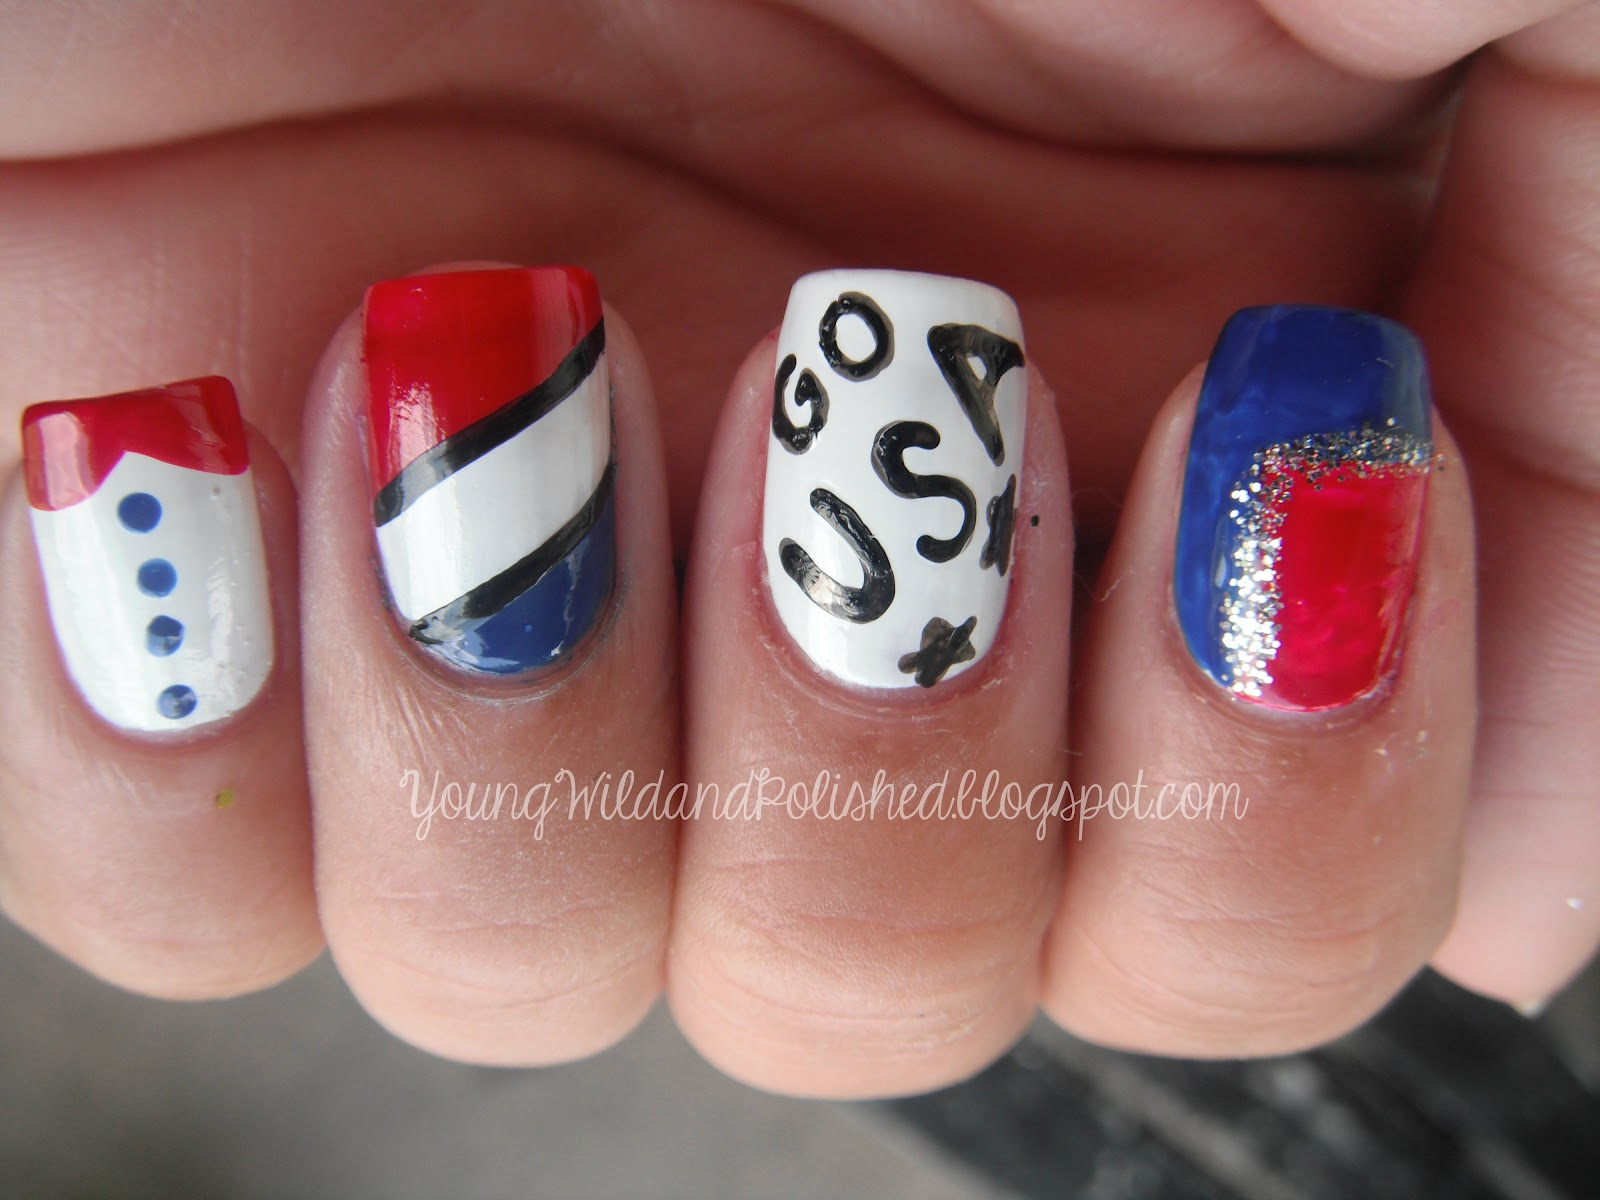 The Black Around Ring Finger Design And Go USA Was Done With A Sally Hansen Nail Art Pen